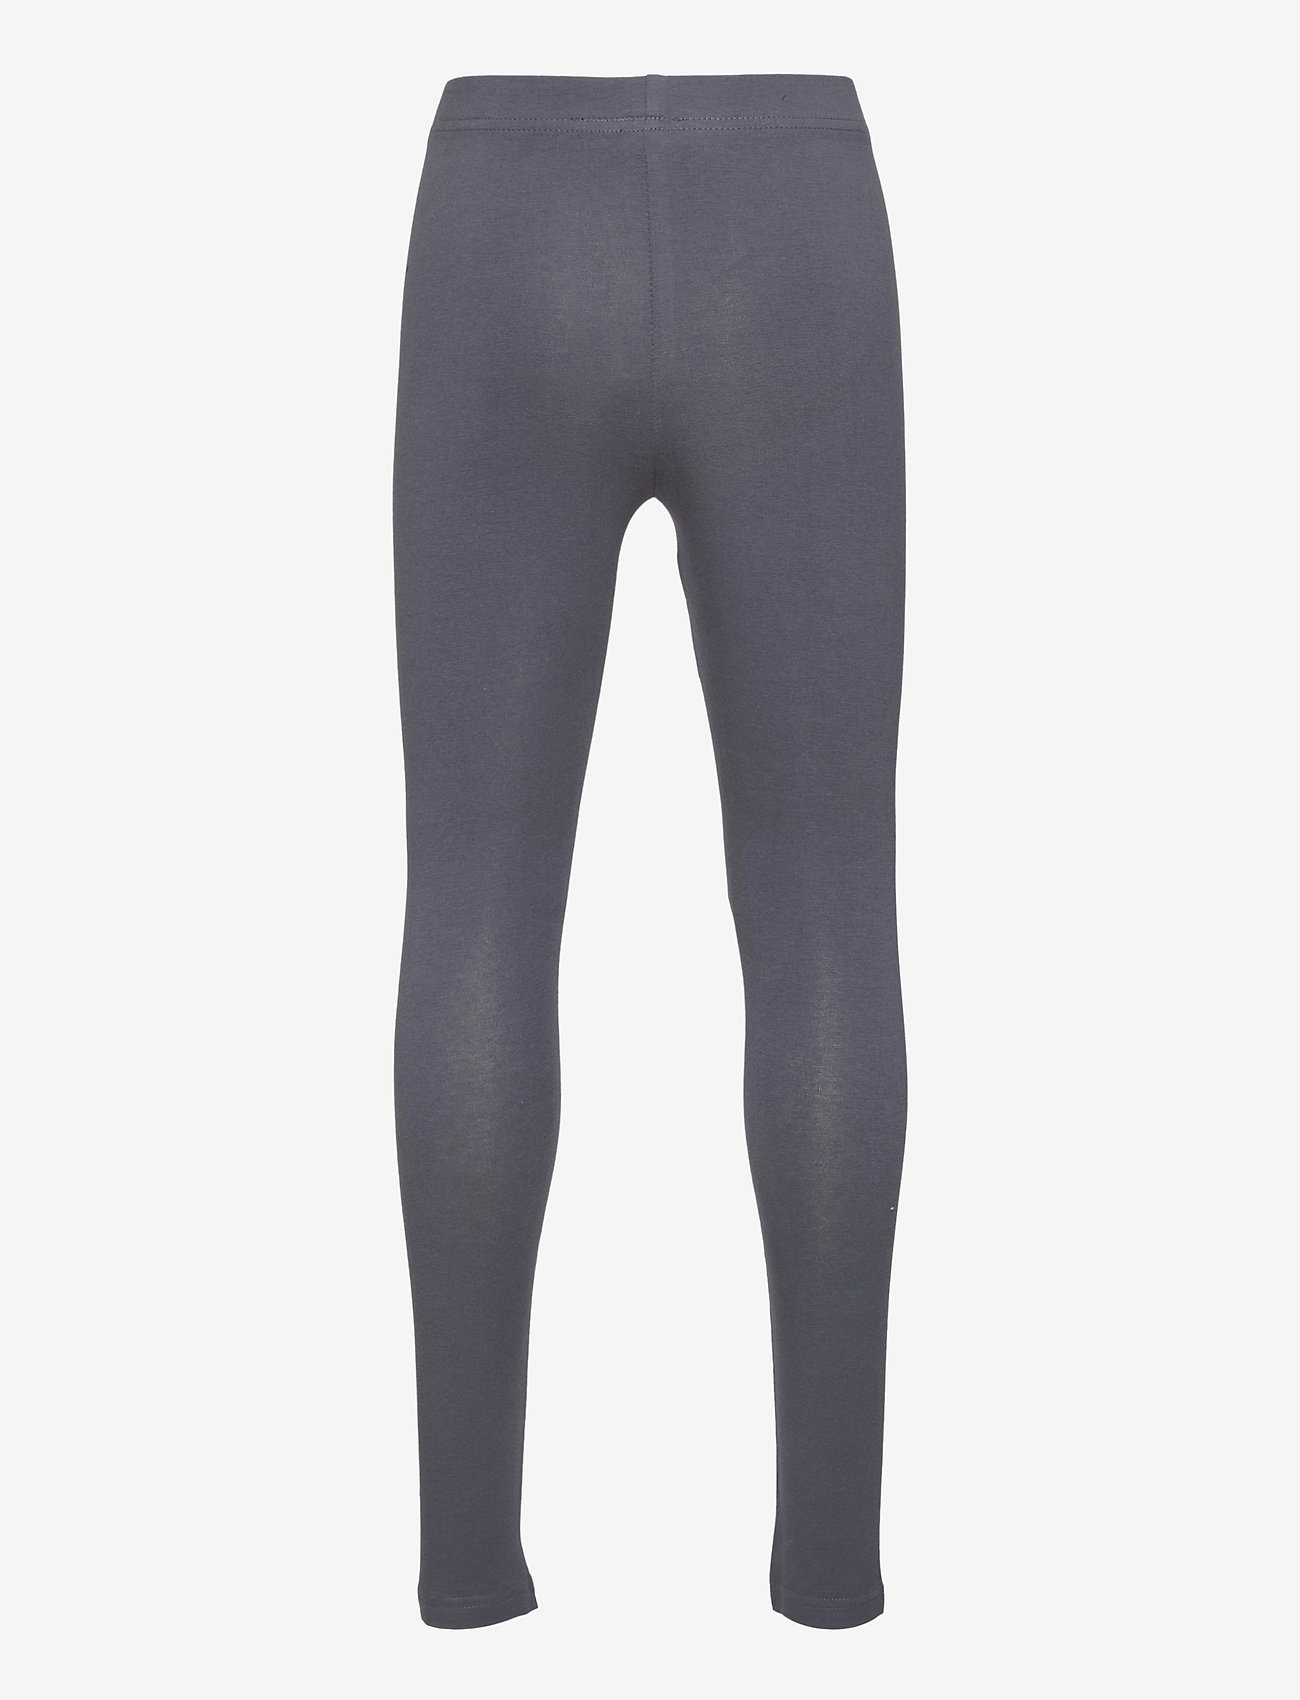 Hummel - hmlONZE TIGHTS - leggings - ombre blue - 1